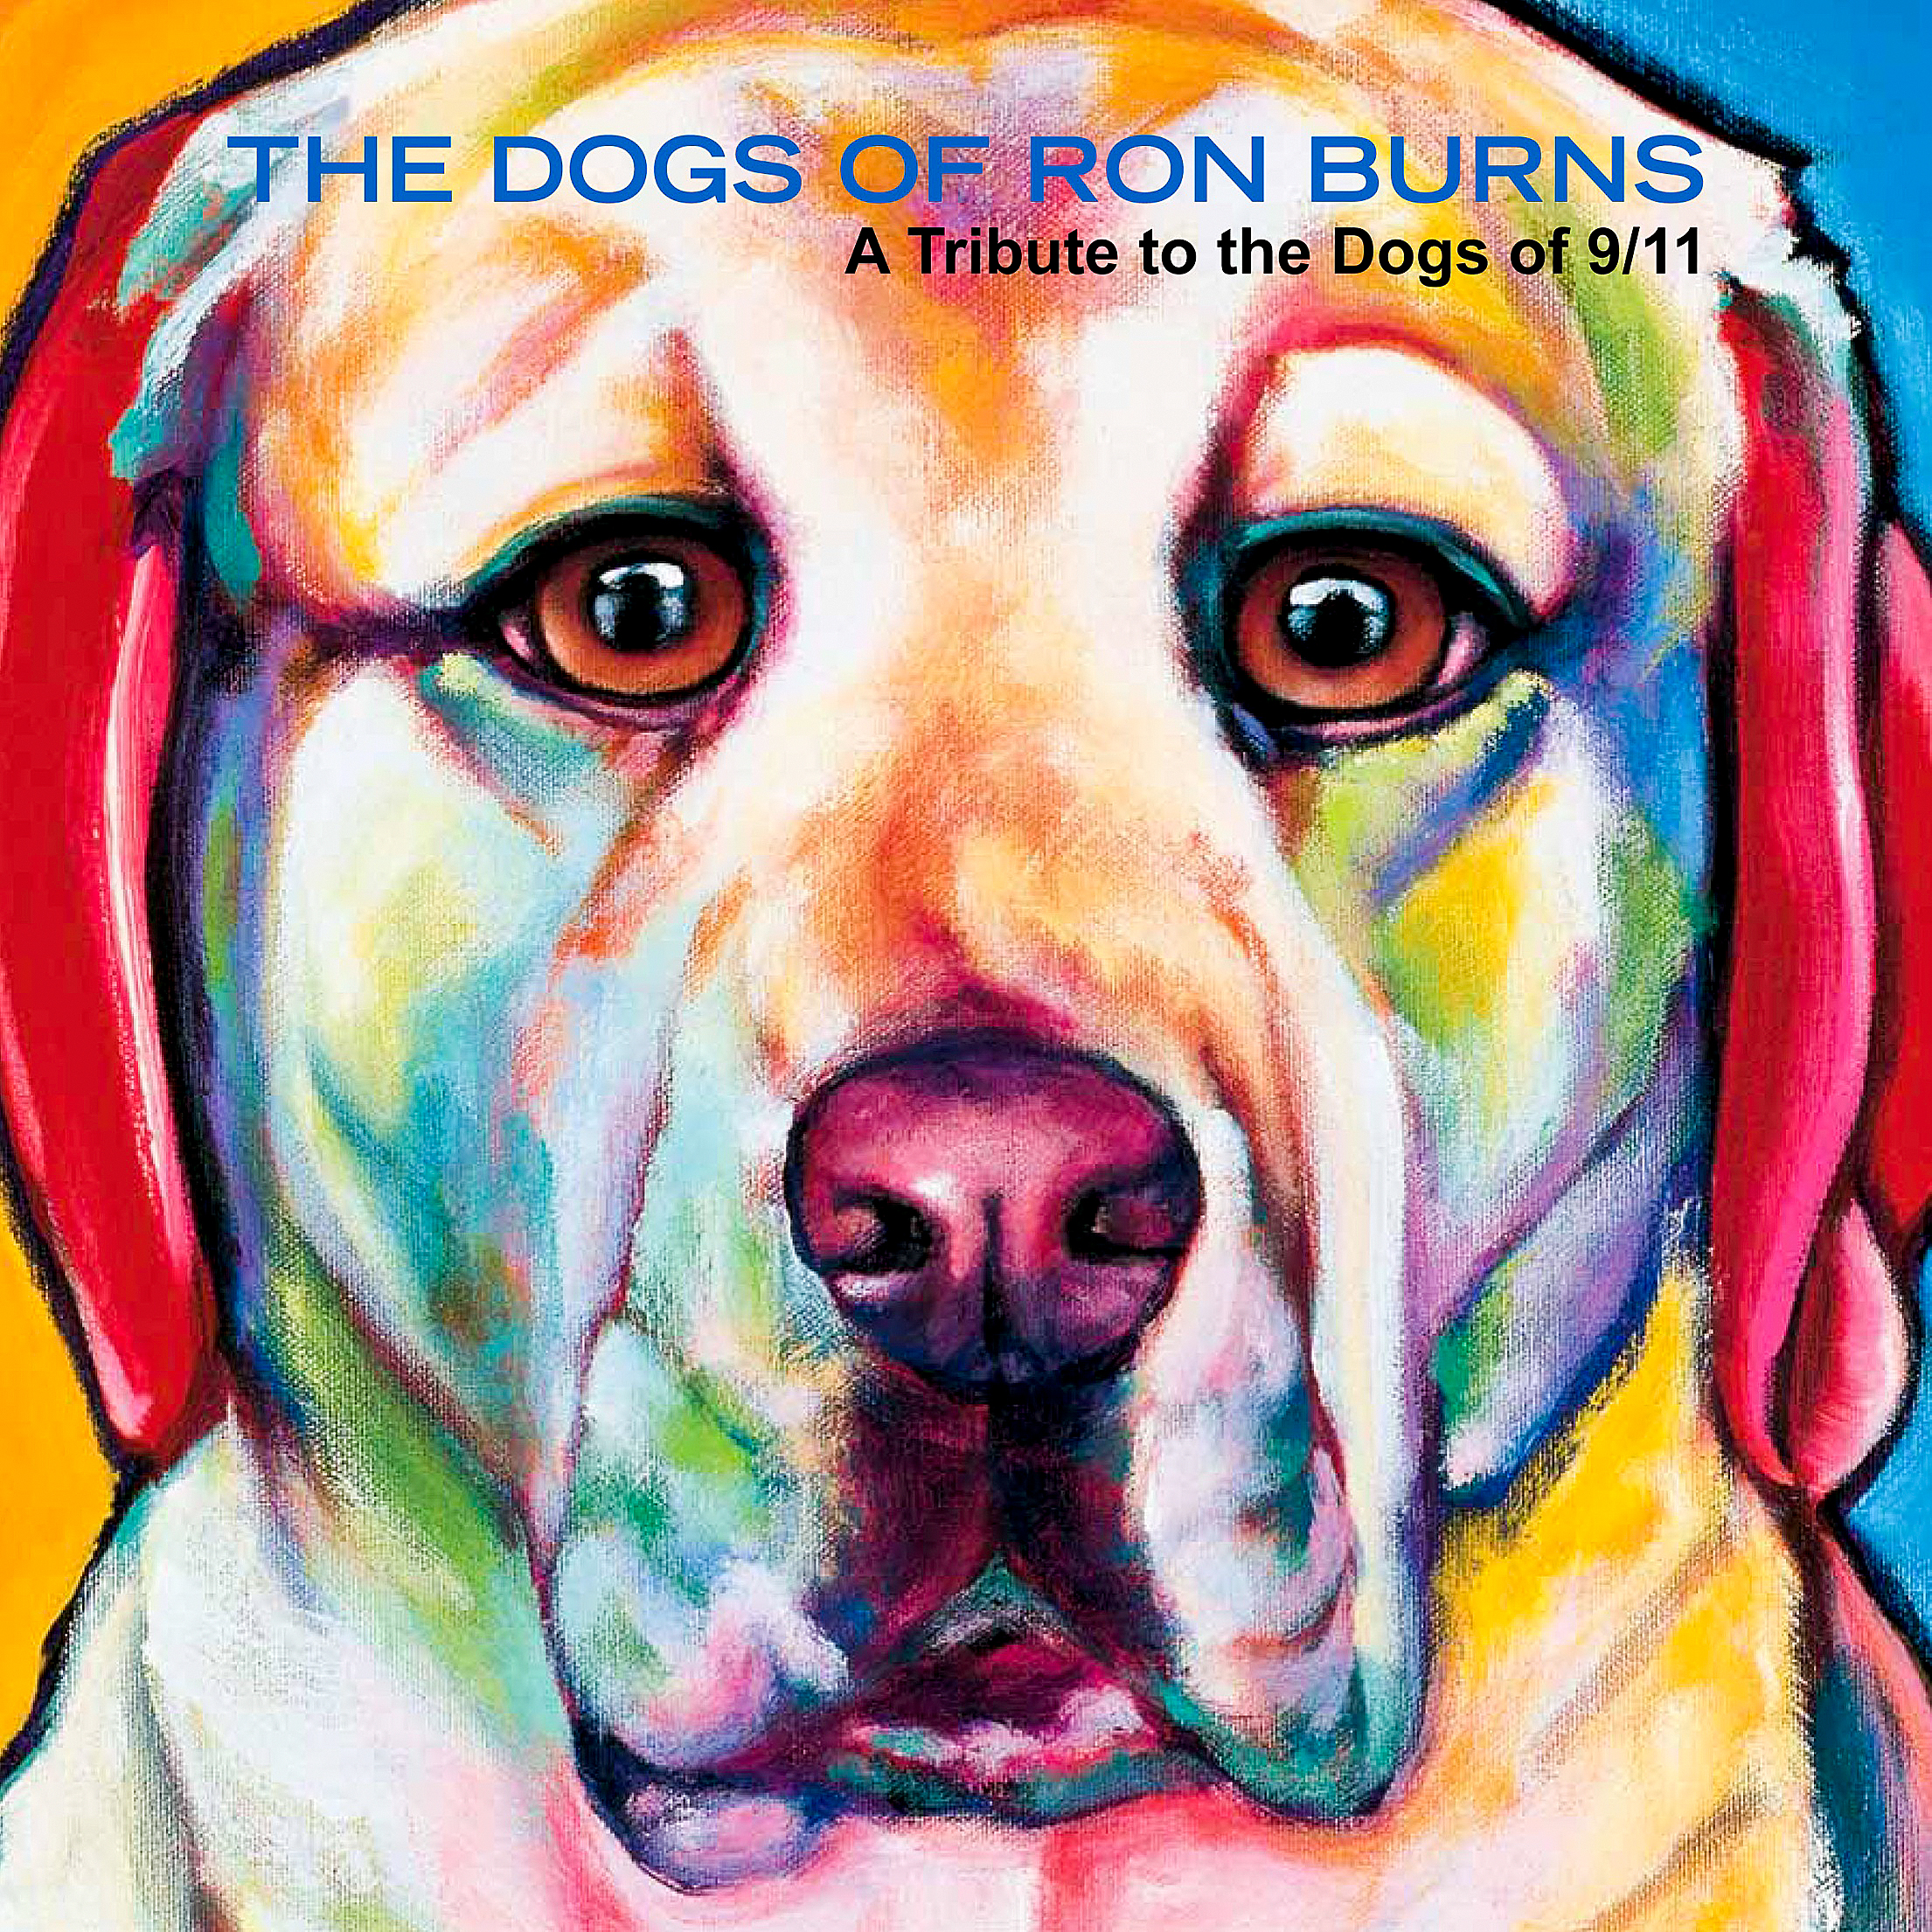 "Sirius, the explosive detection dog Sirius, the explosive detection dog who died when the World Trade Towers went down, is on the cover of ""The Dogs of Ron Burns: A Tribute to the Dogs of 9/11."""